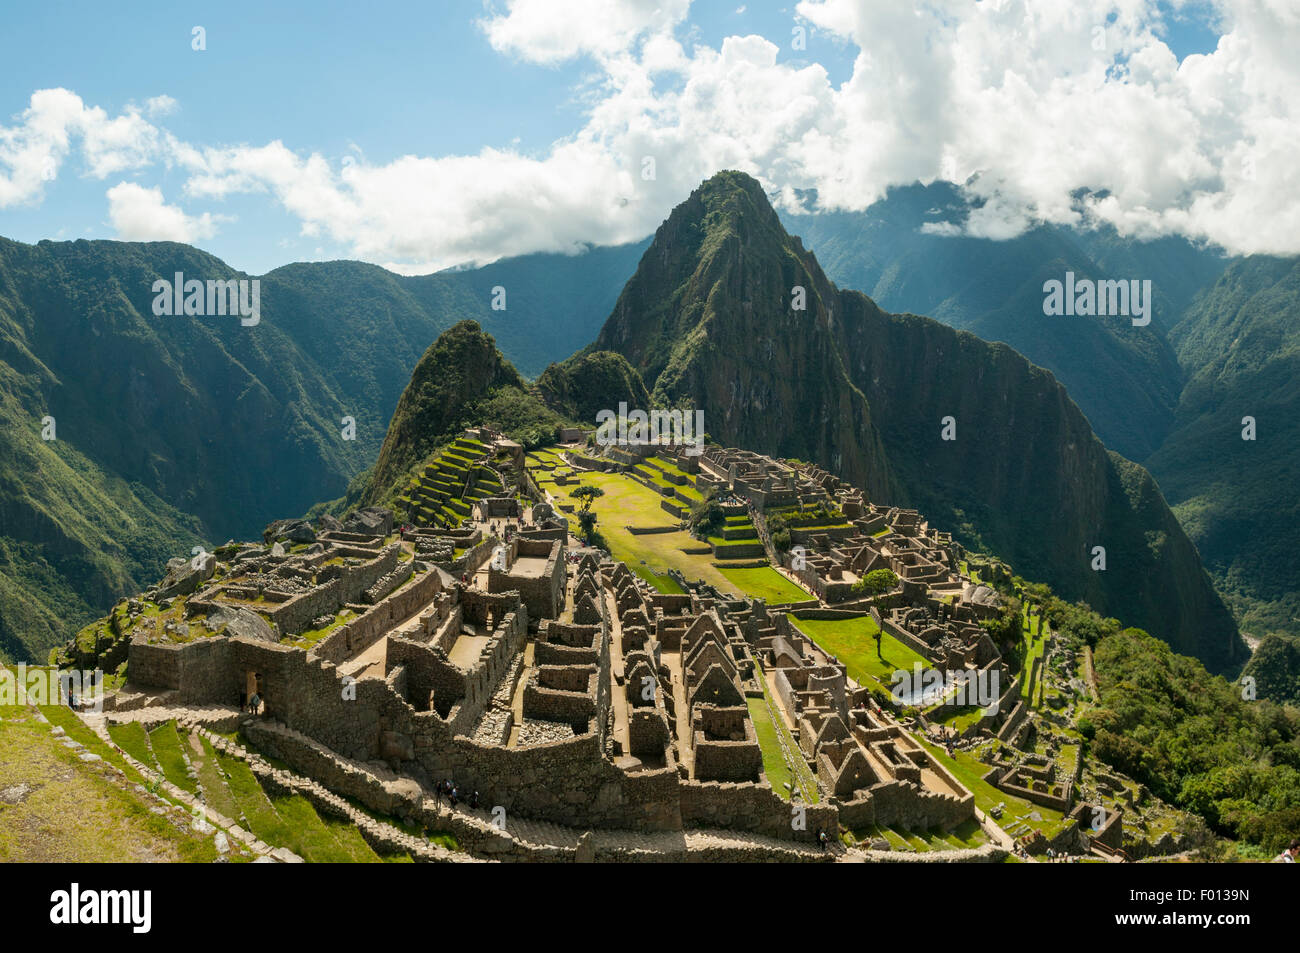 Inca Ruins of Machu Picchu from the Guardhouse, Peru - Stock Image